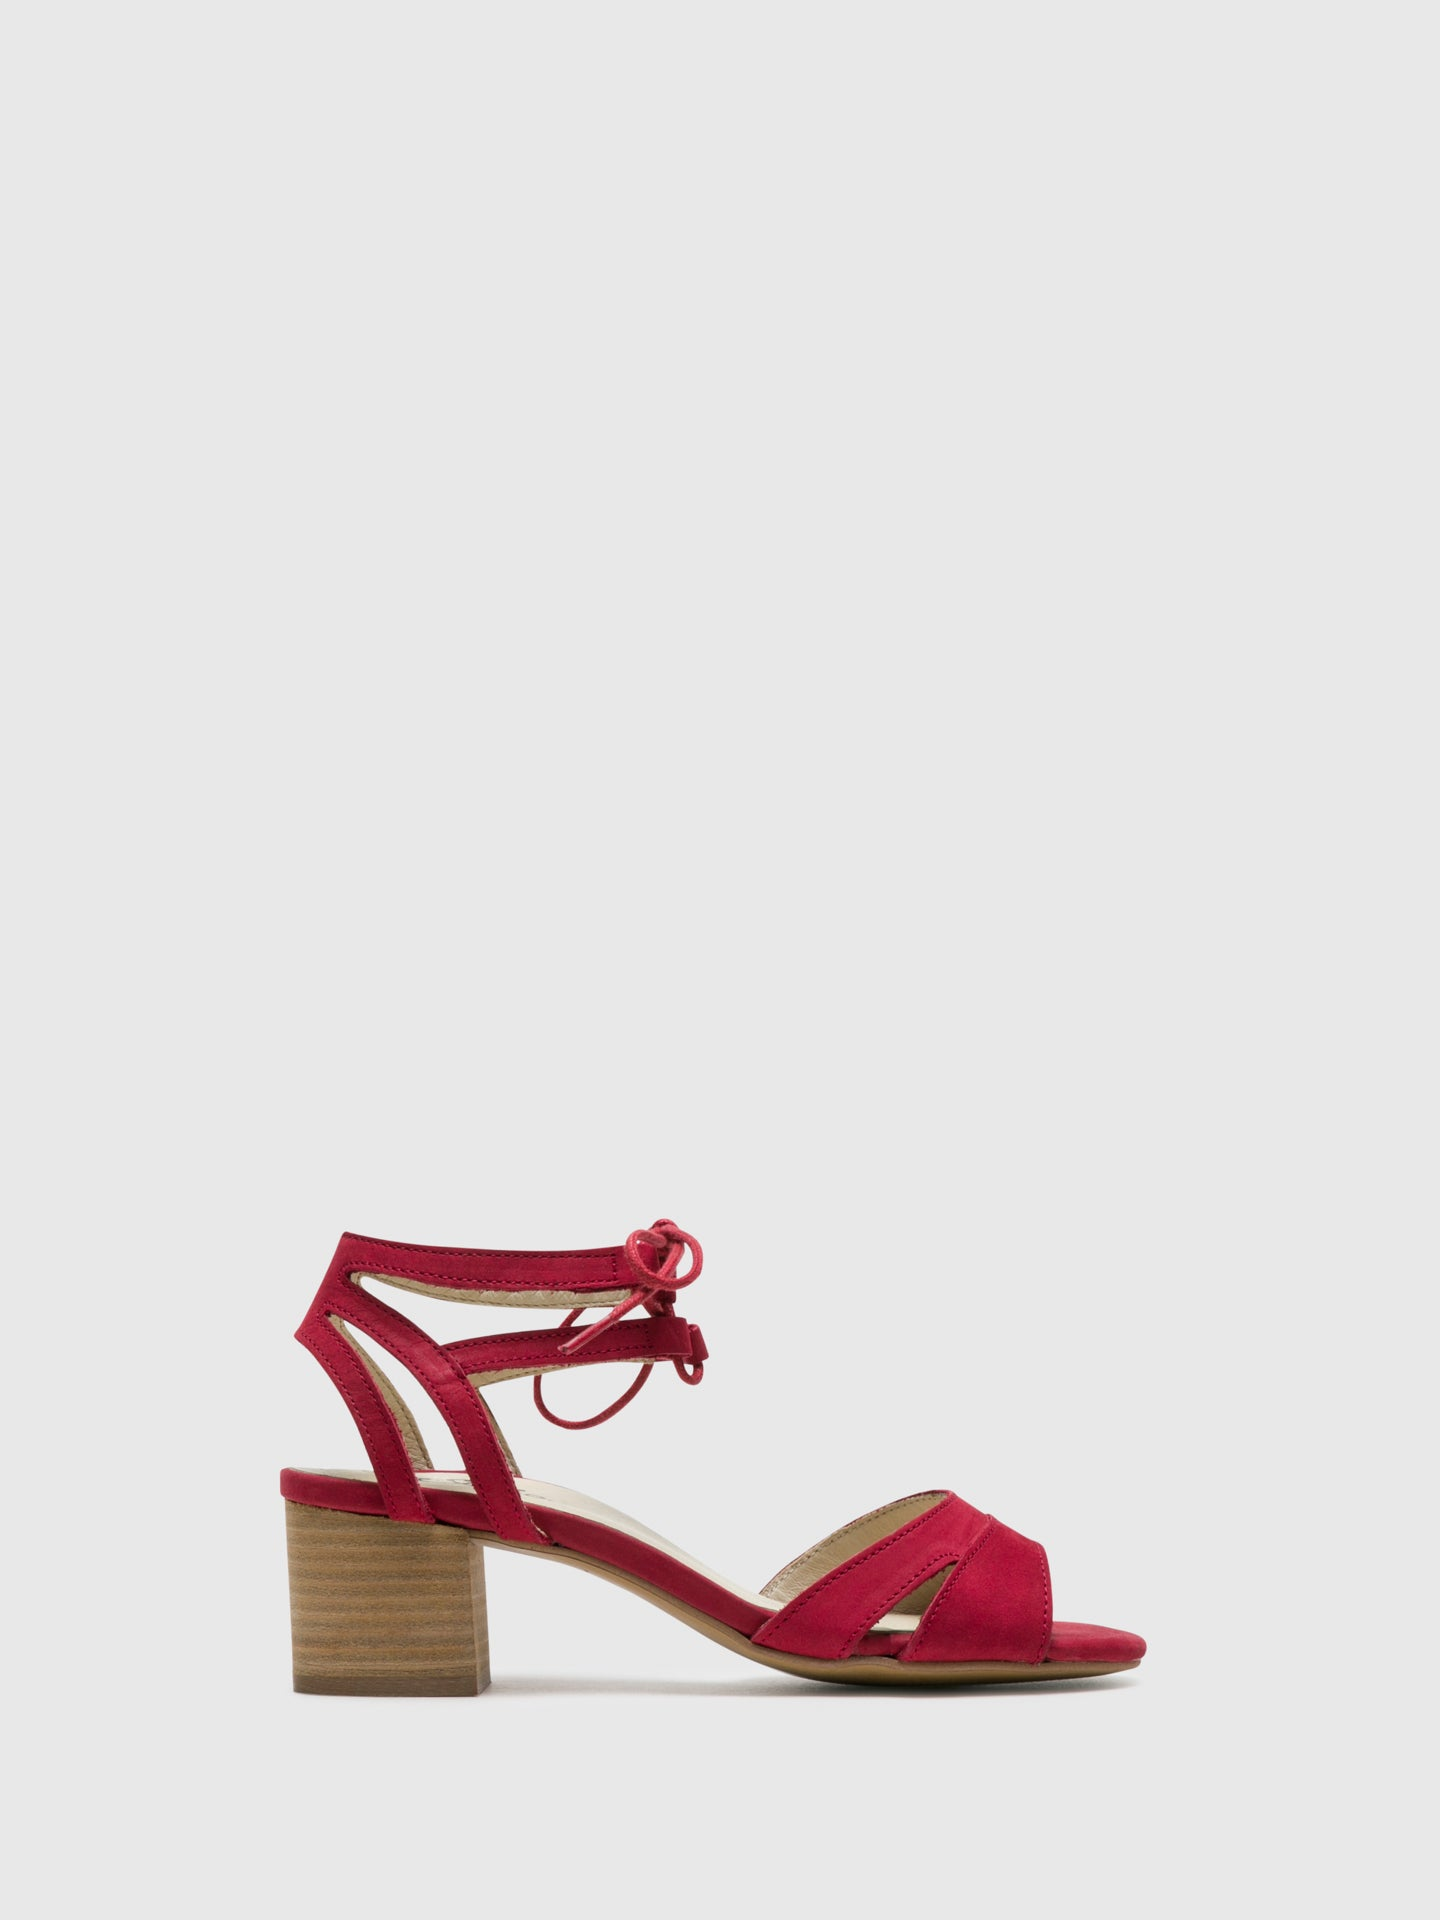 Bos&Co Red Ankle Strap Sandals